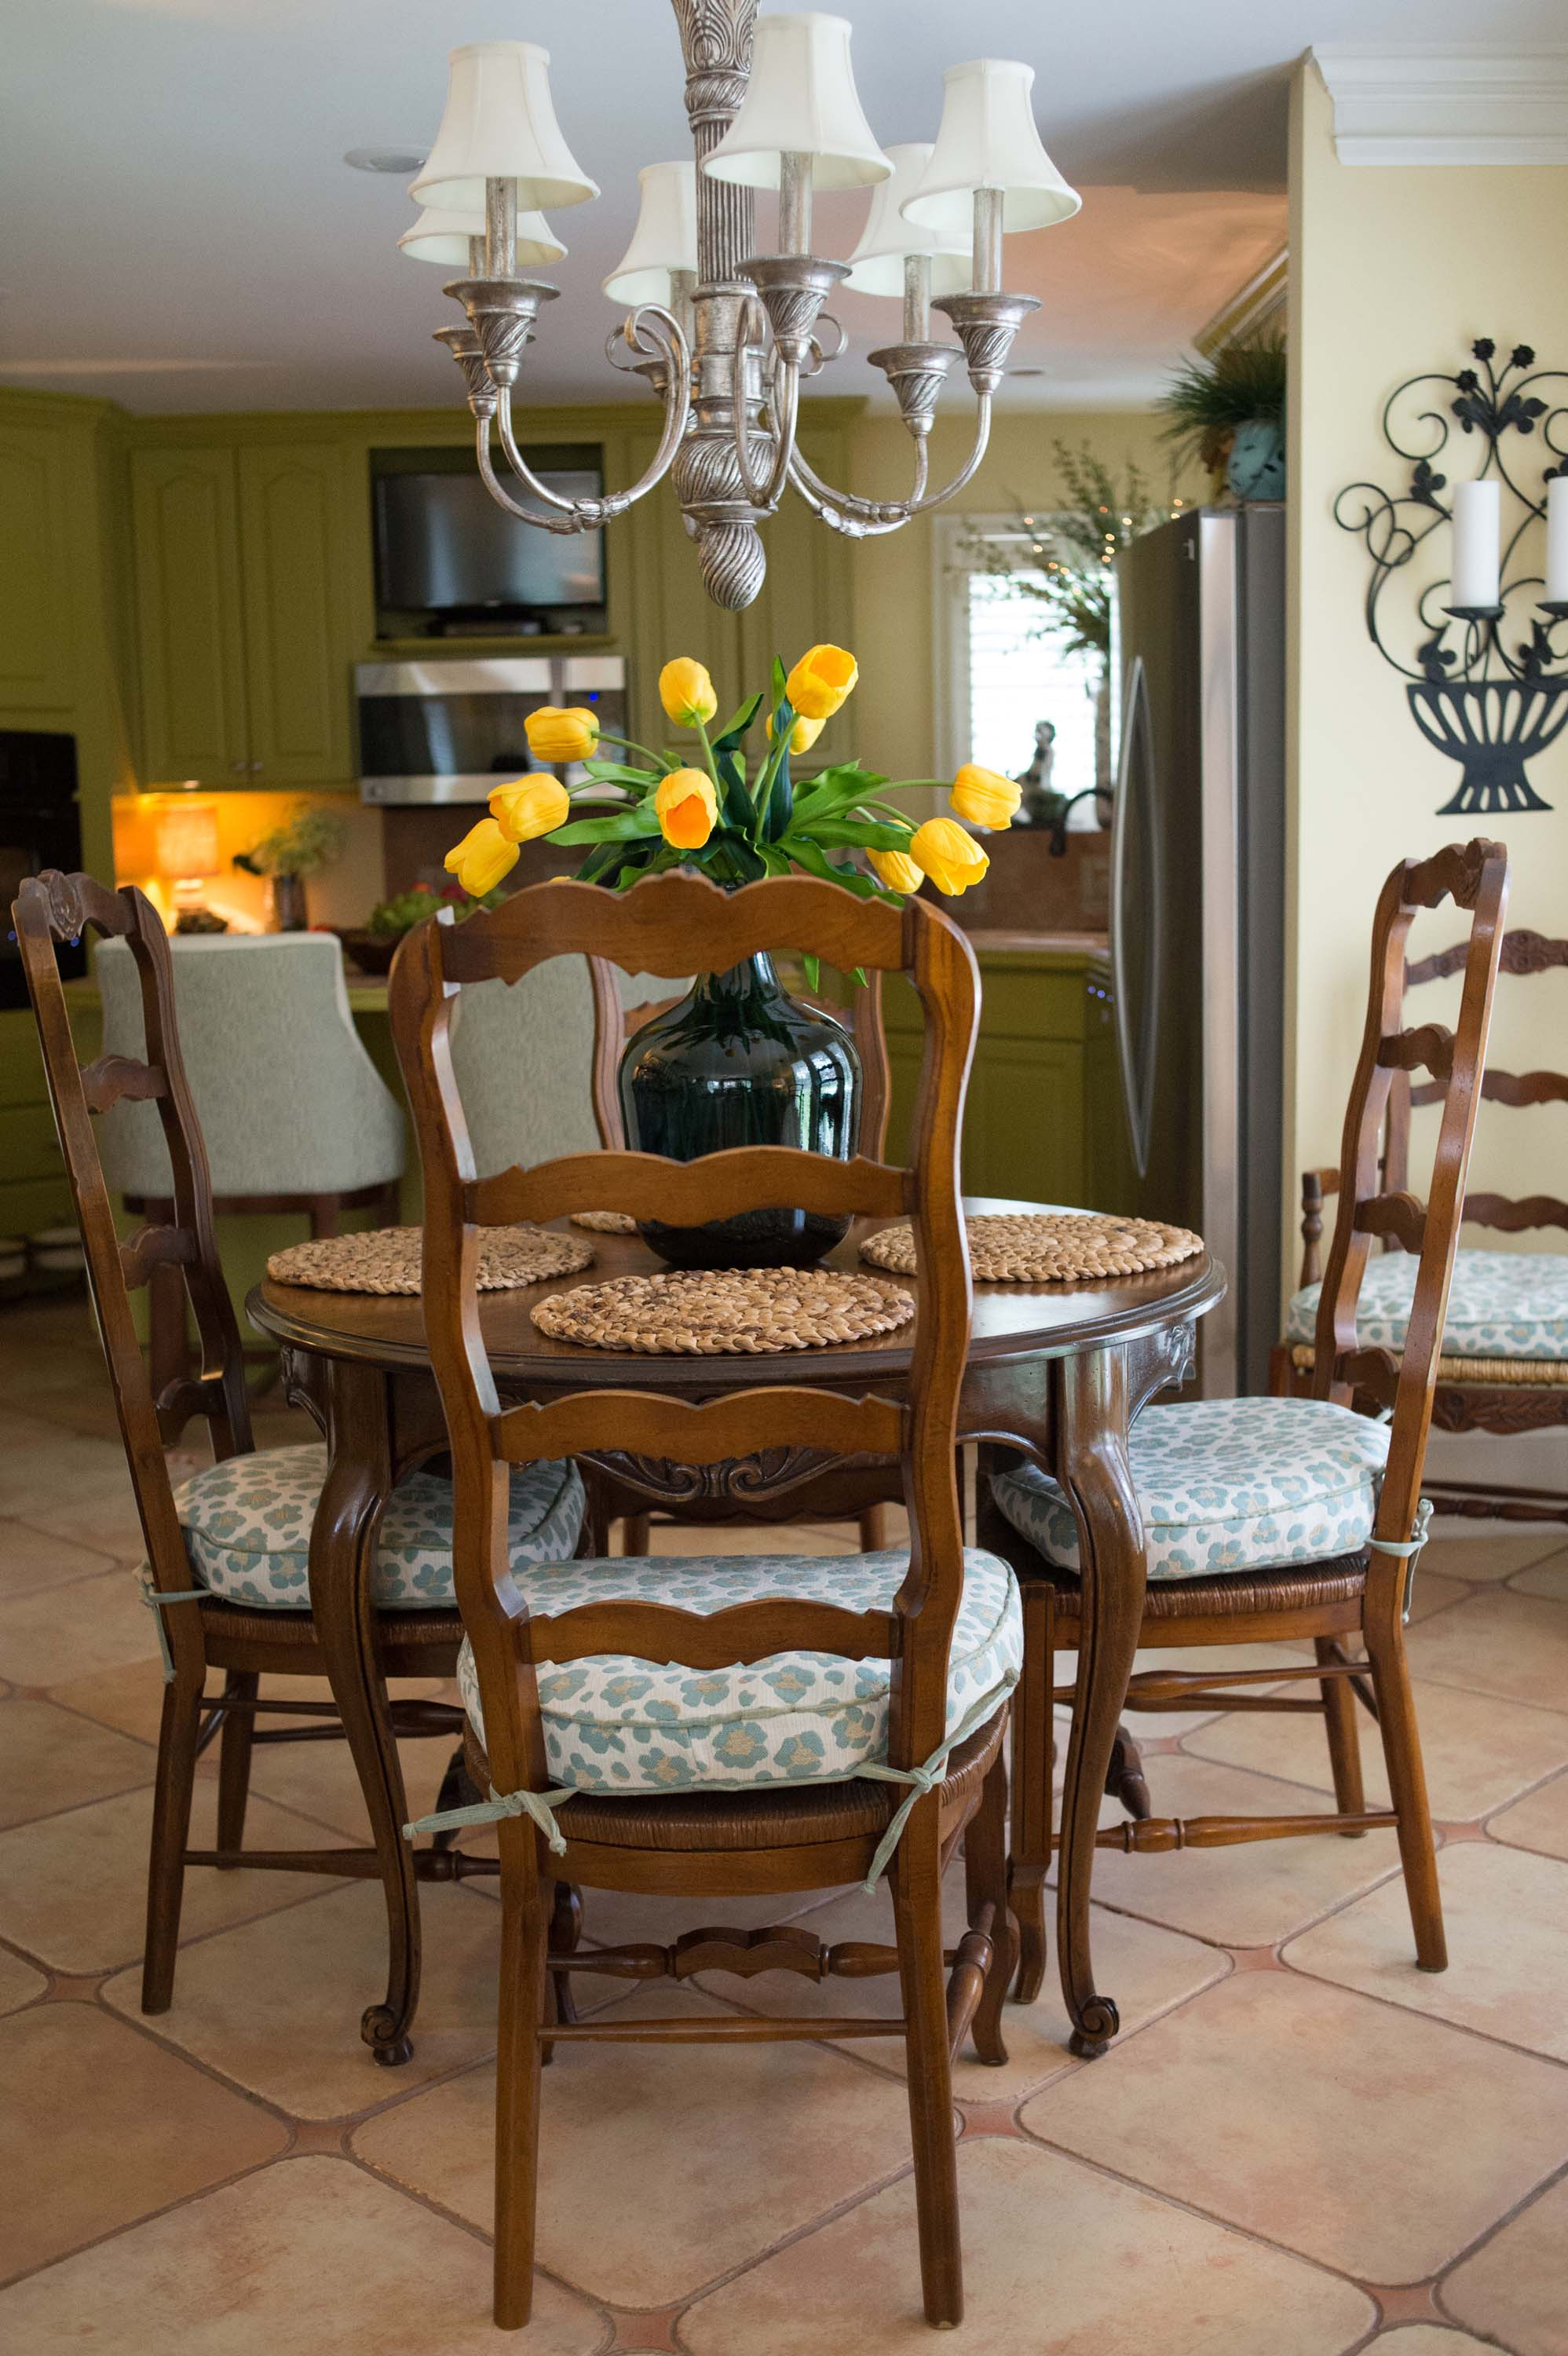 House interior with flower on round dining table, wooden chairs and chandelier